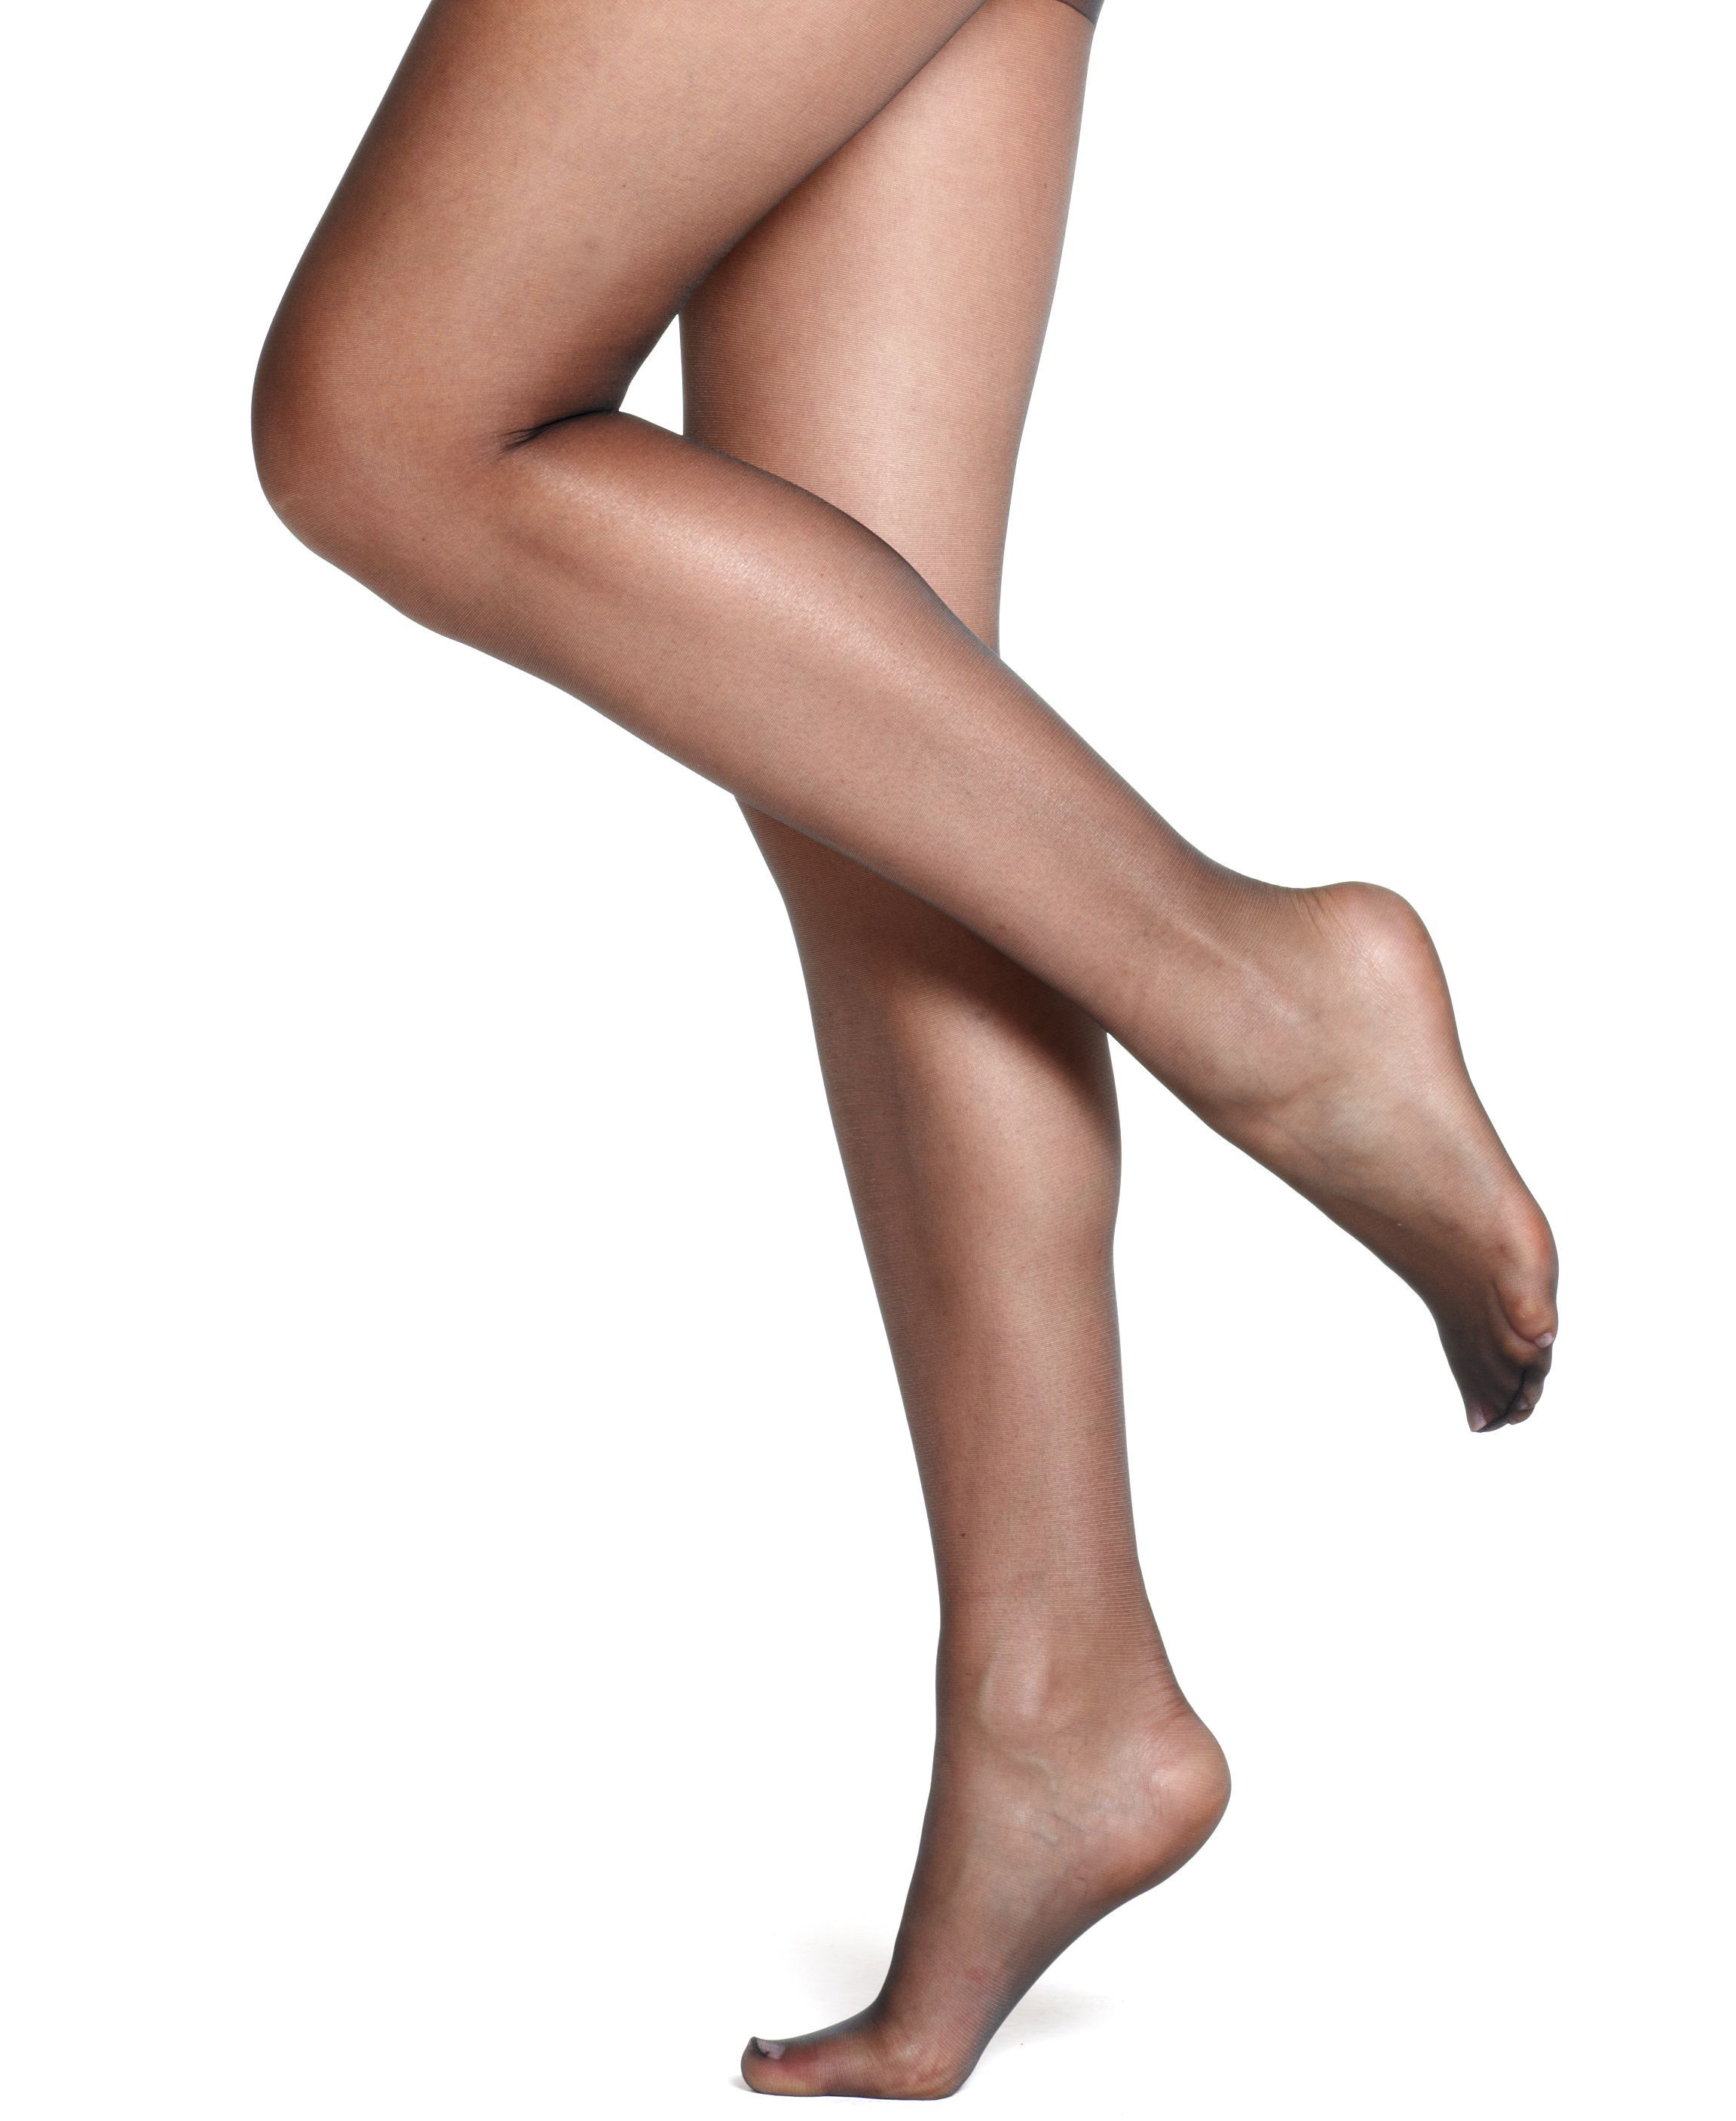 b6bac0e1c8d Women s So Silky Sheer Hosiery